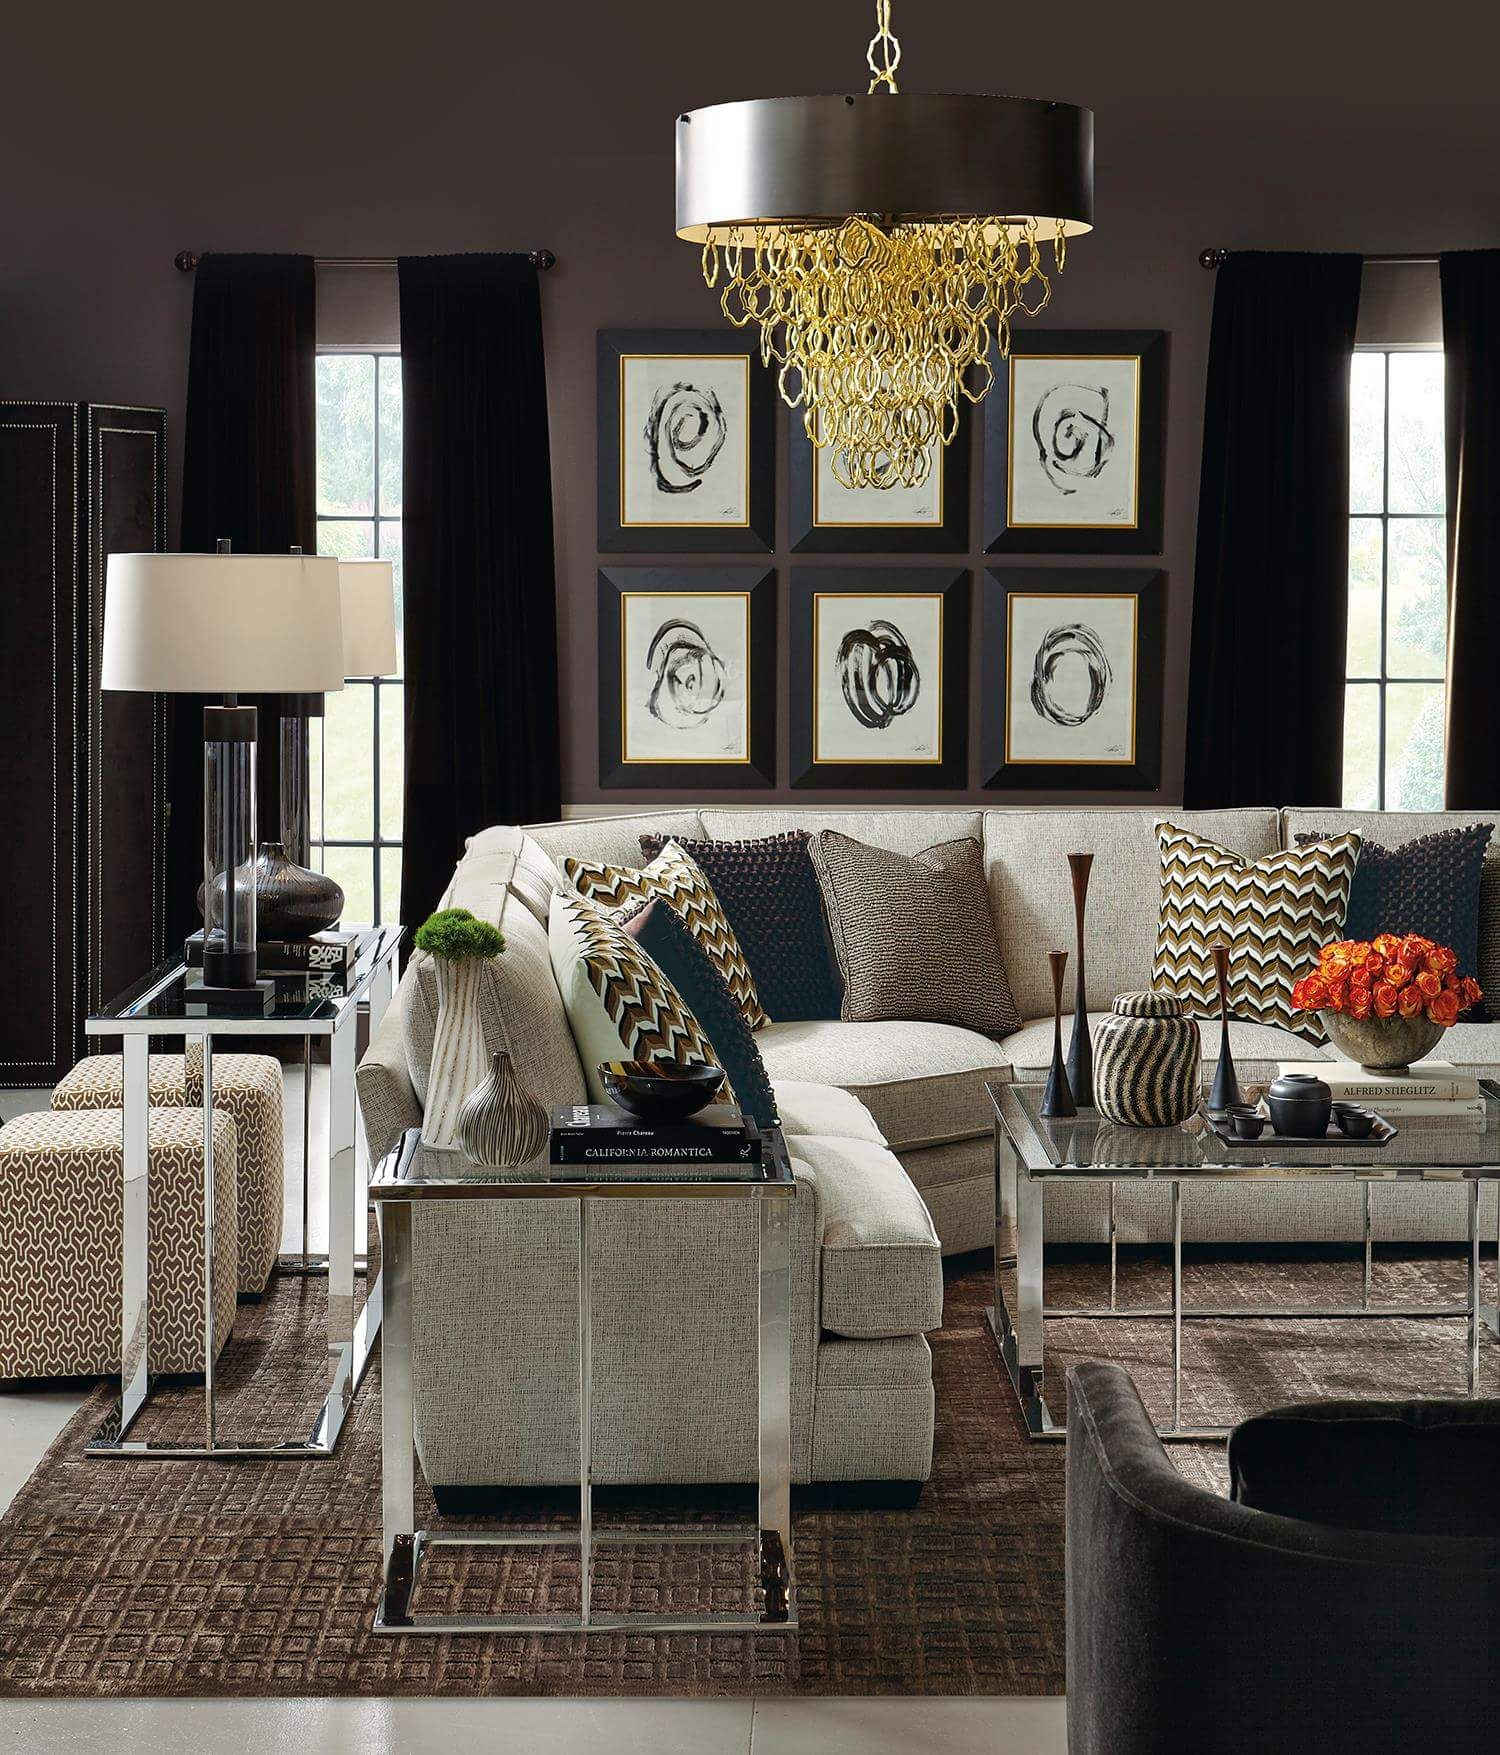 Pin by Elaine R on Design   Furniture, Living room furniture, High end furniture stores